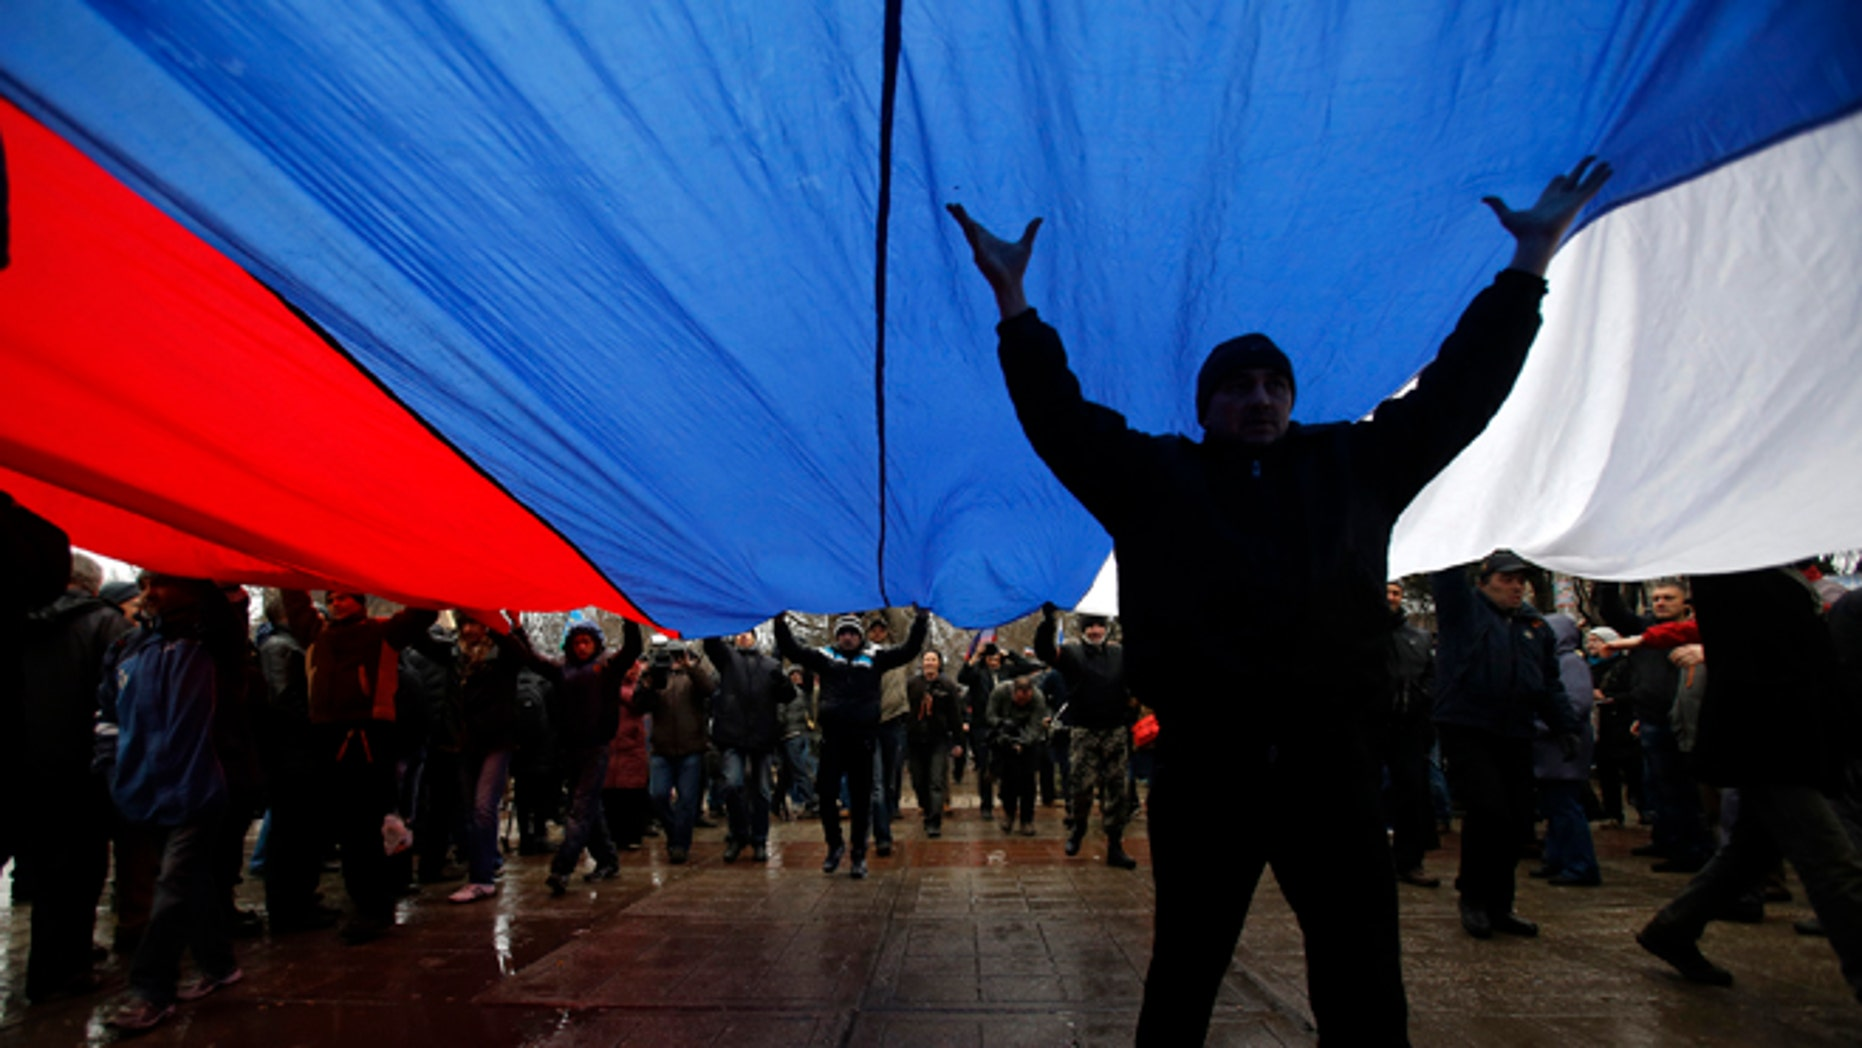 Feb. 27, 2014: Pro-Russian demonstrators march with a huge Russian flag during a protest in front of a local government building in Simferopol, Crimea, Ukraine.